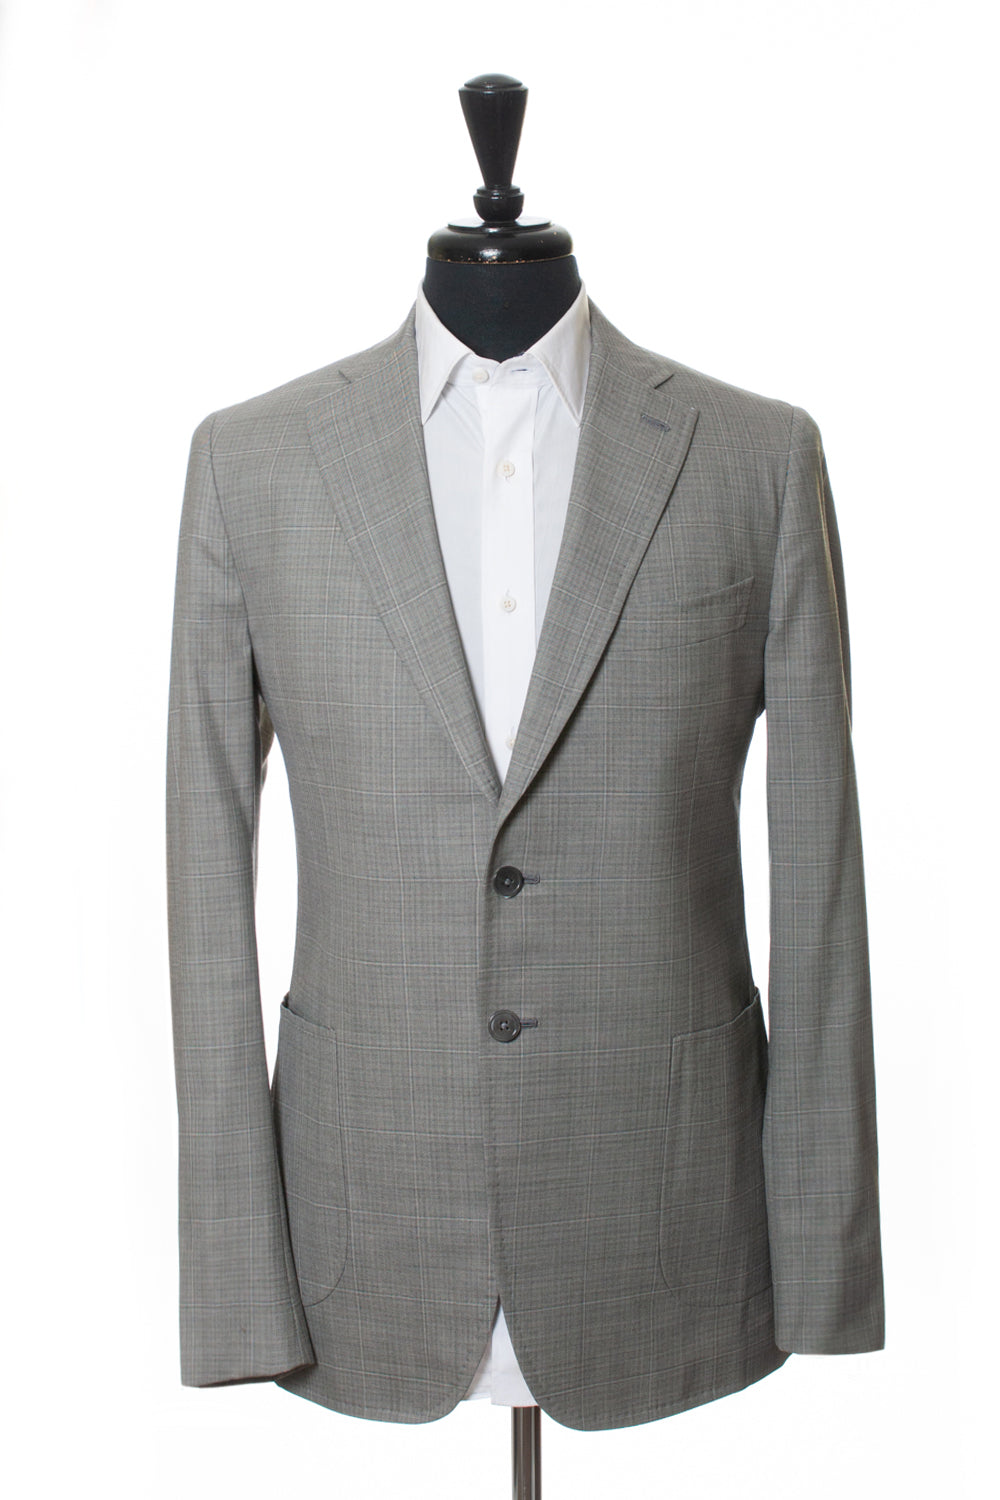 Isaia Grey Check Wool Cortina Suit for Luxmrkt.com Menswear Consignment Edmonton